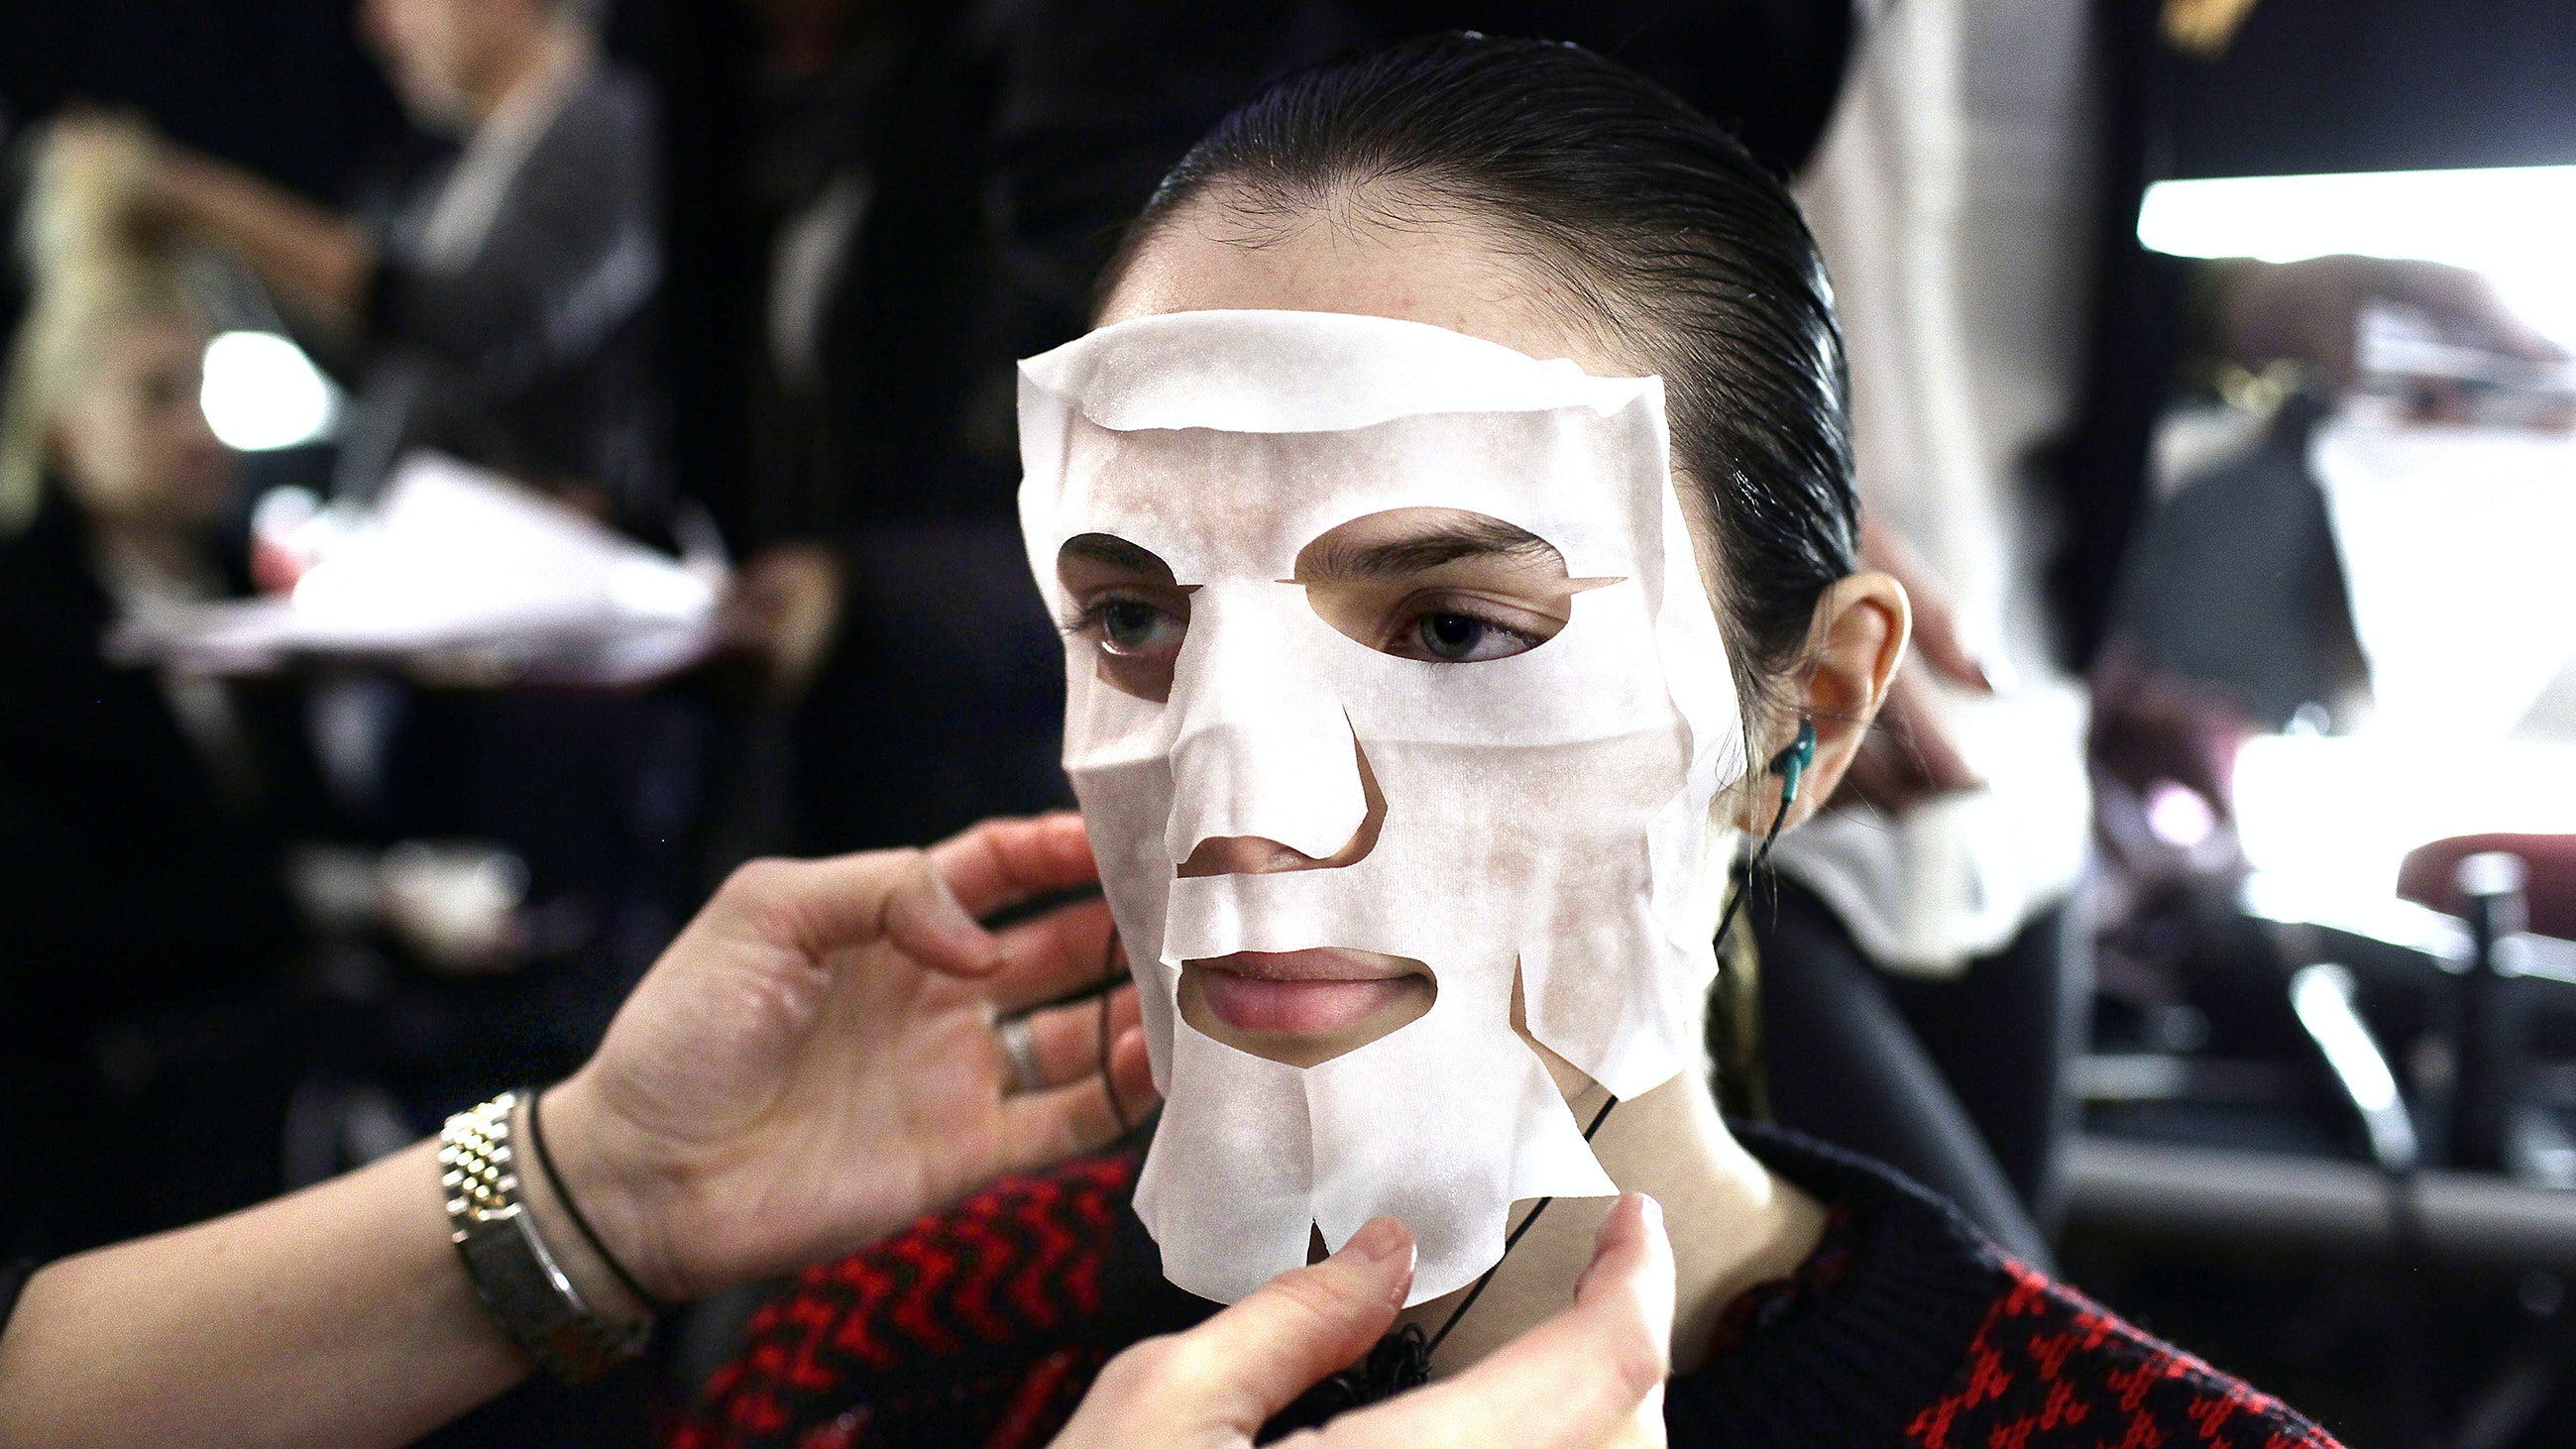 A model has moisturizer mask applied to her face backstage before presenting a creation by Carolina Herrera Fall/Winter collection during New York Fashion Week February 16, 2015 in New York